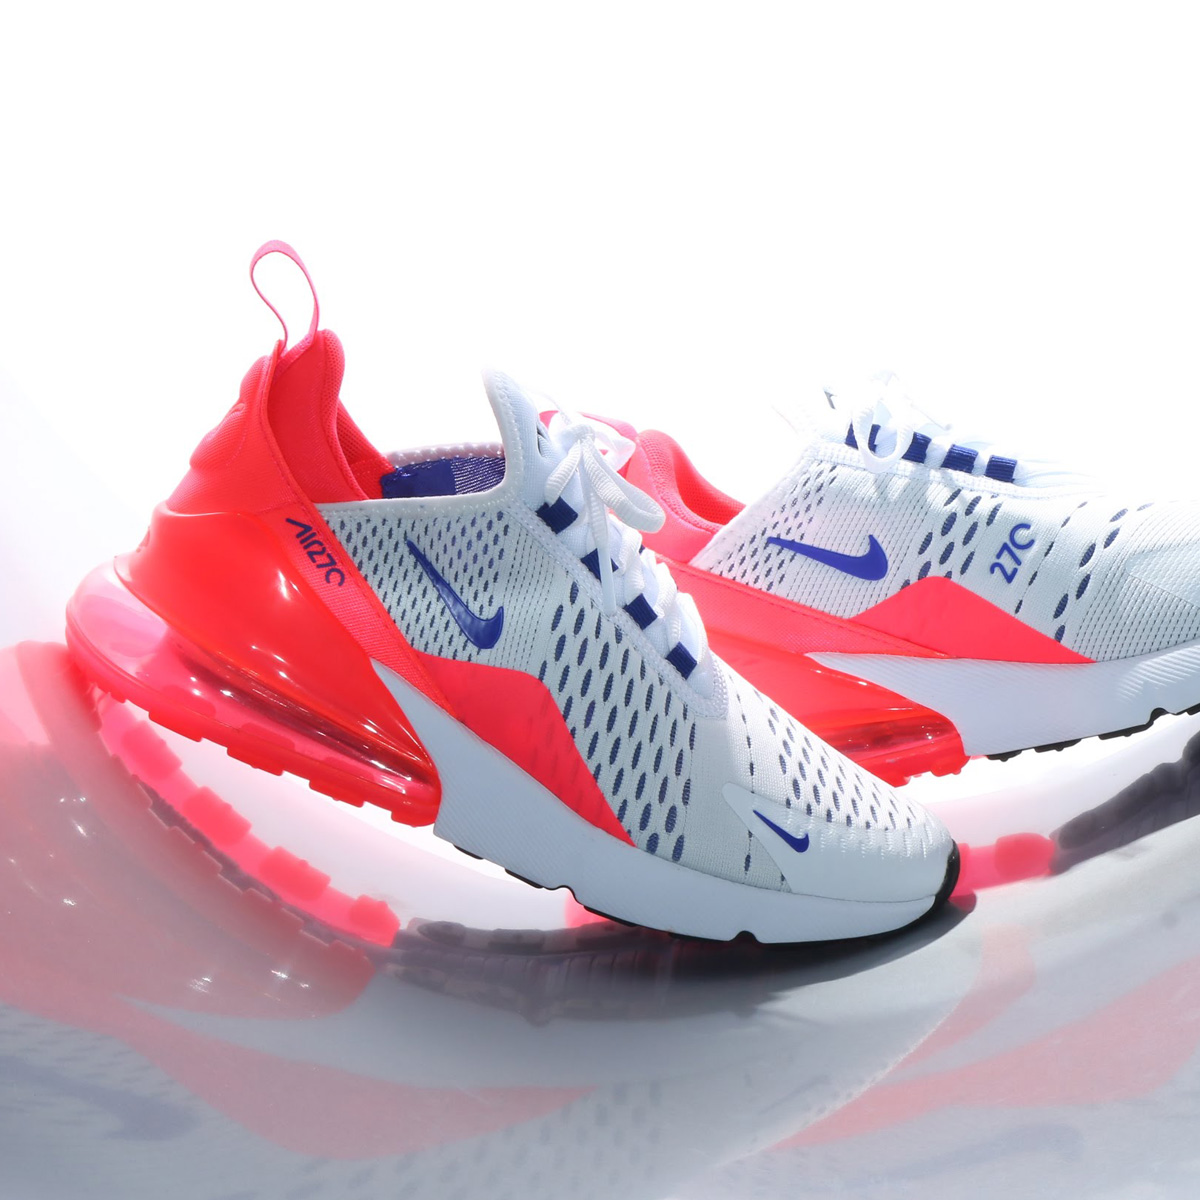 factory authentic 2a20a 41c87 nike air max 270 red